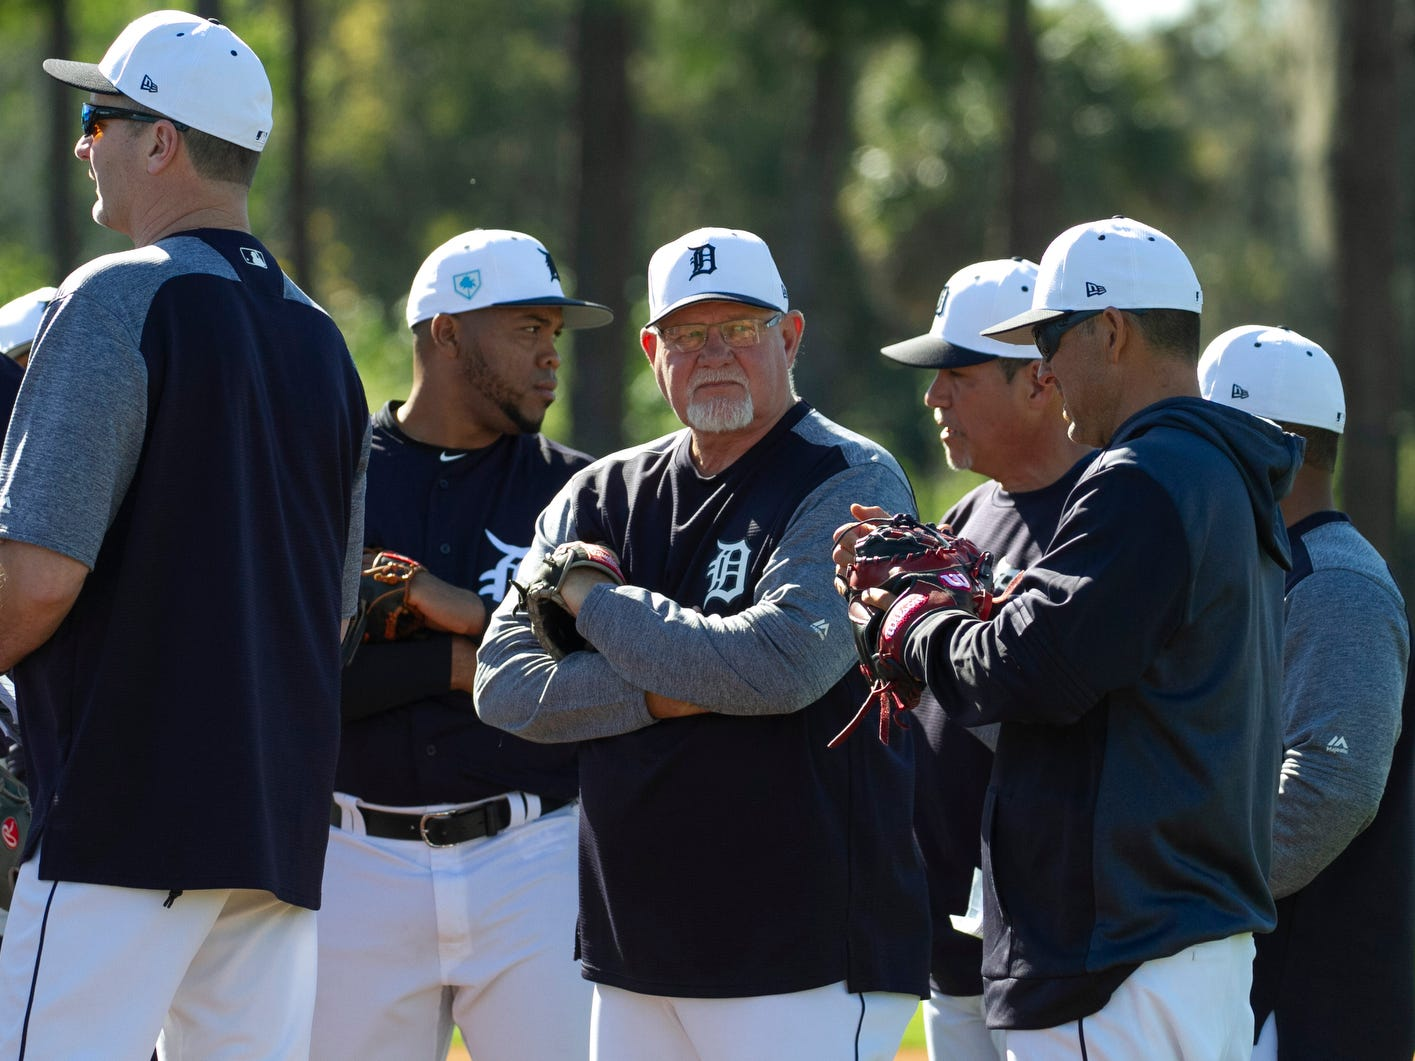 Detroit Tigers Manager Ron Gardenhire talks with his players during spring training practice.